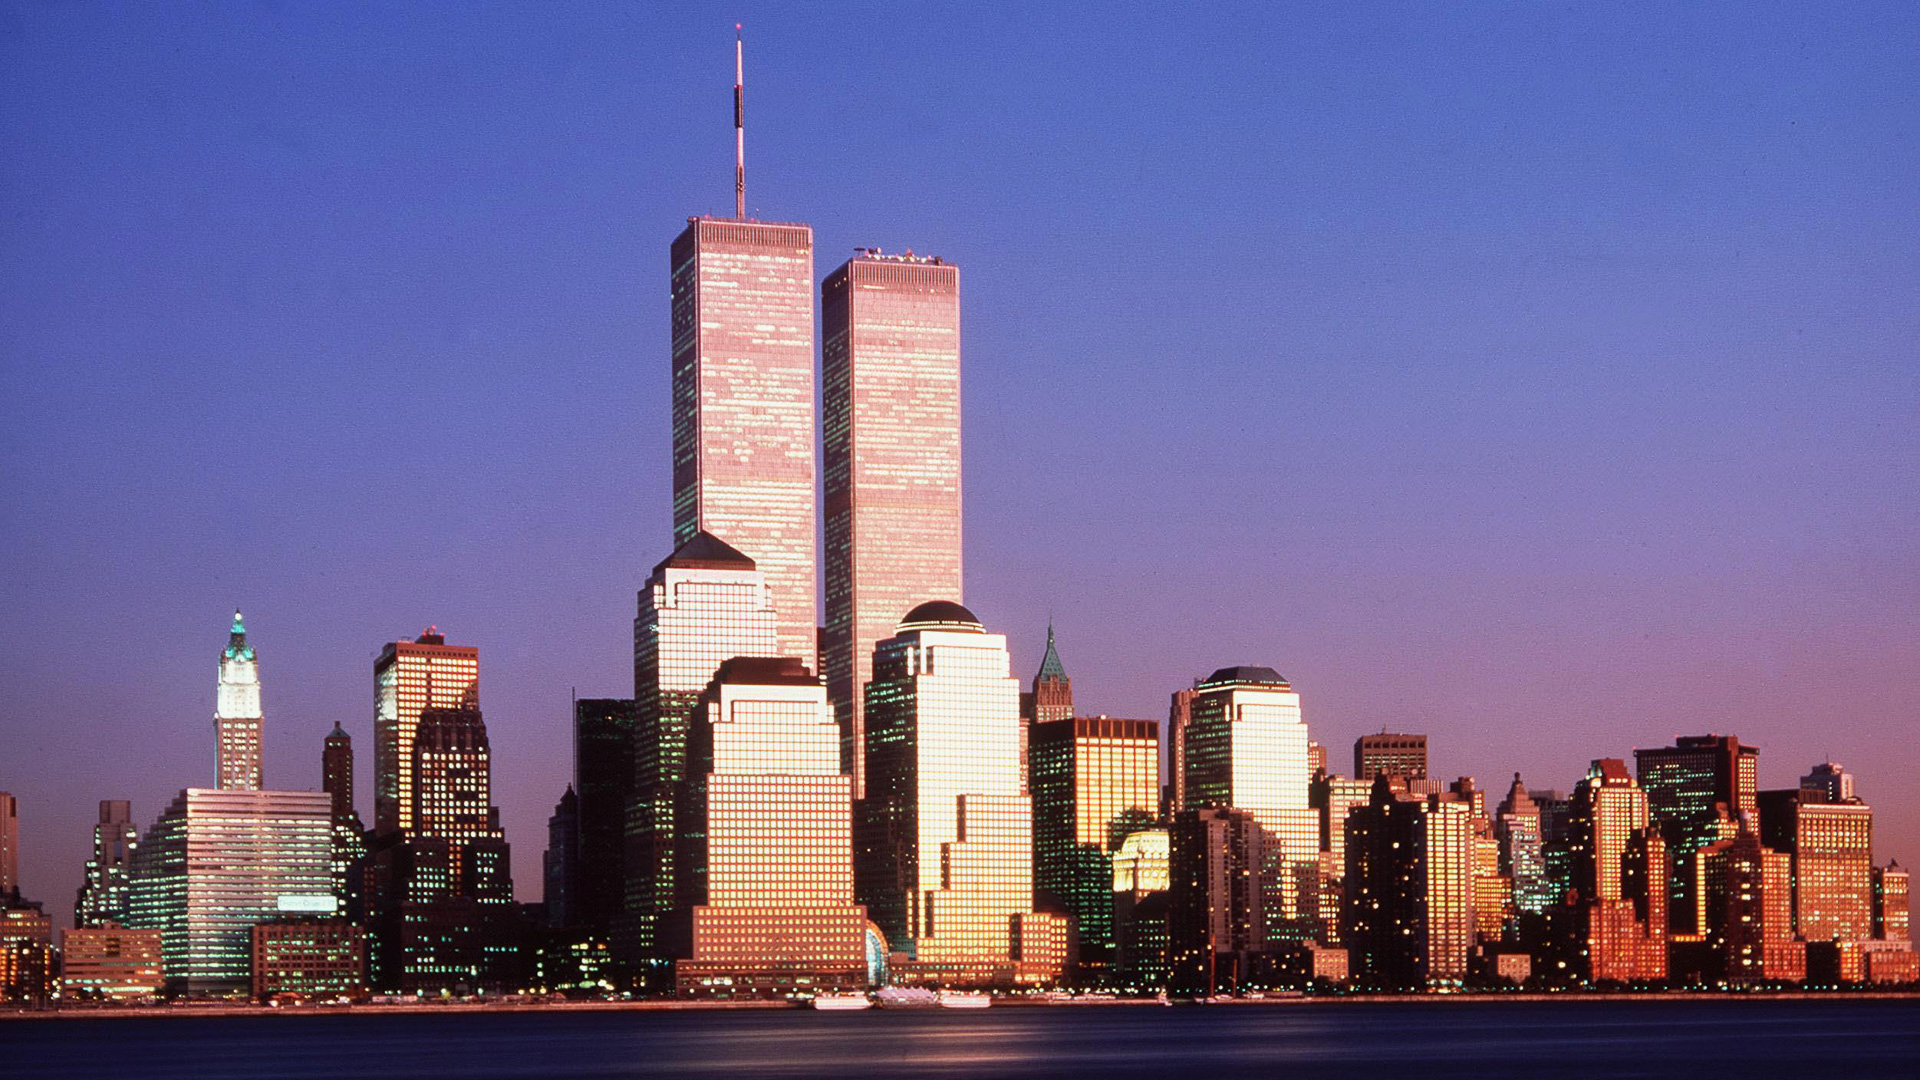 25 Ways 9/11 Affected the US Economy